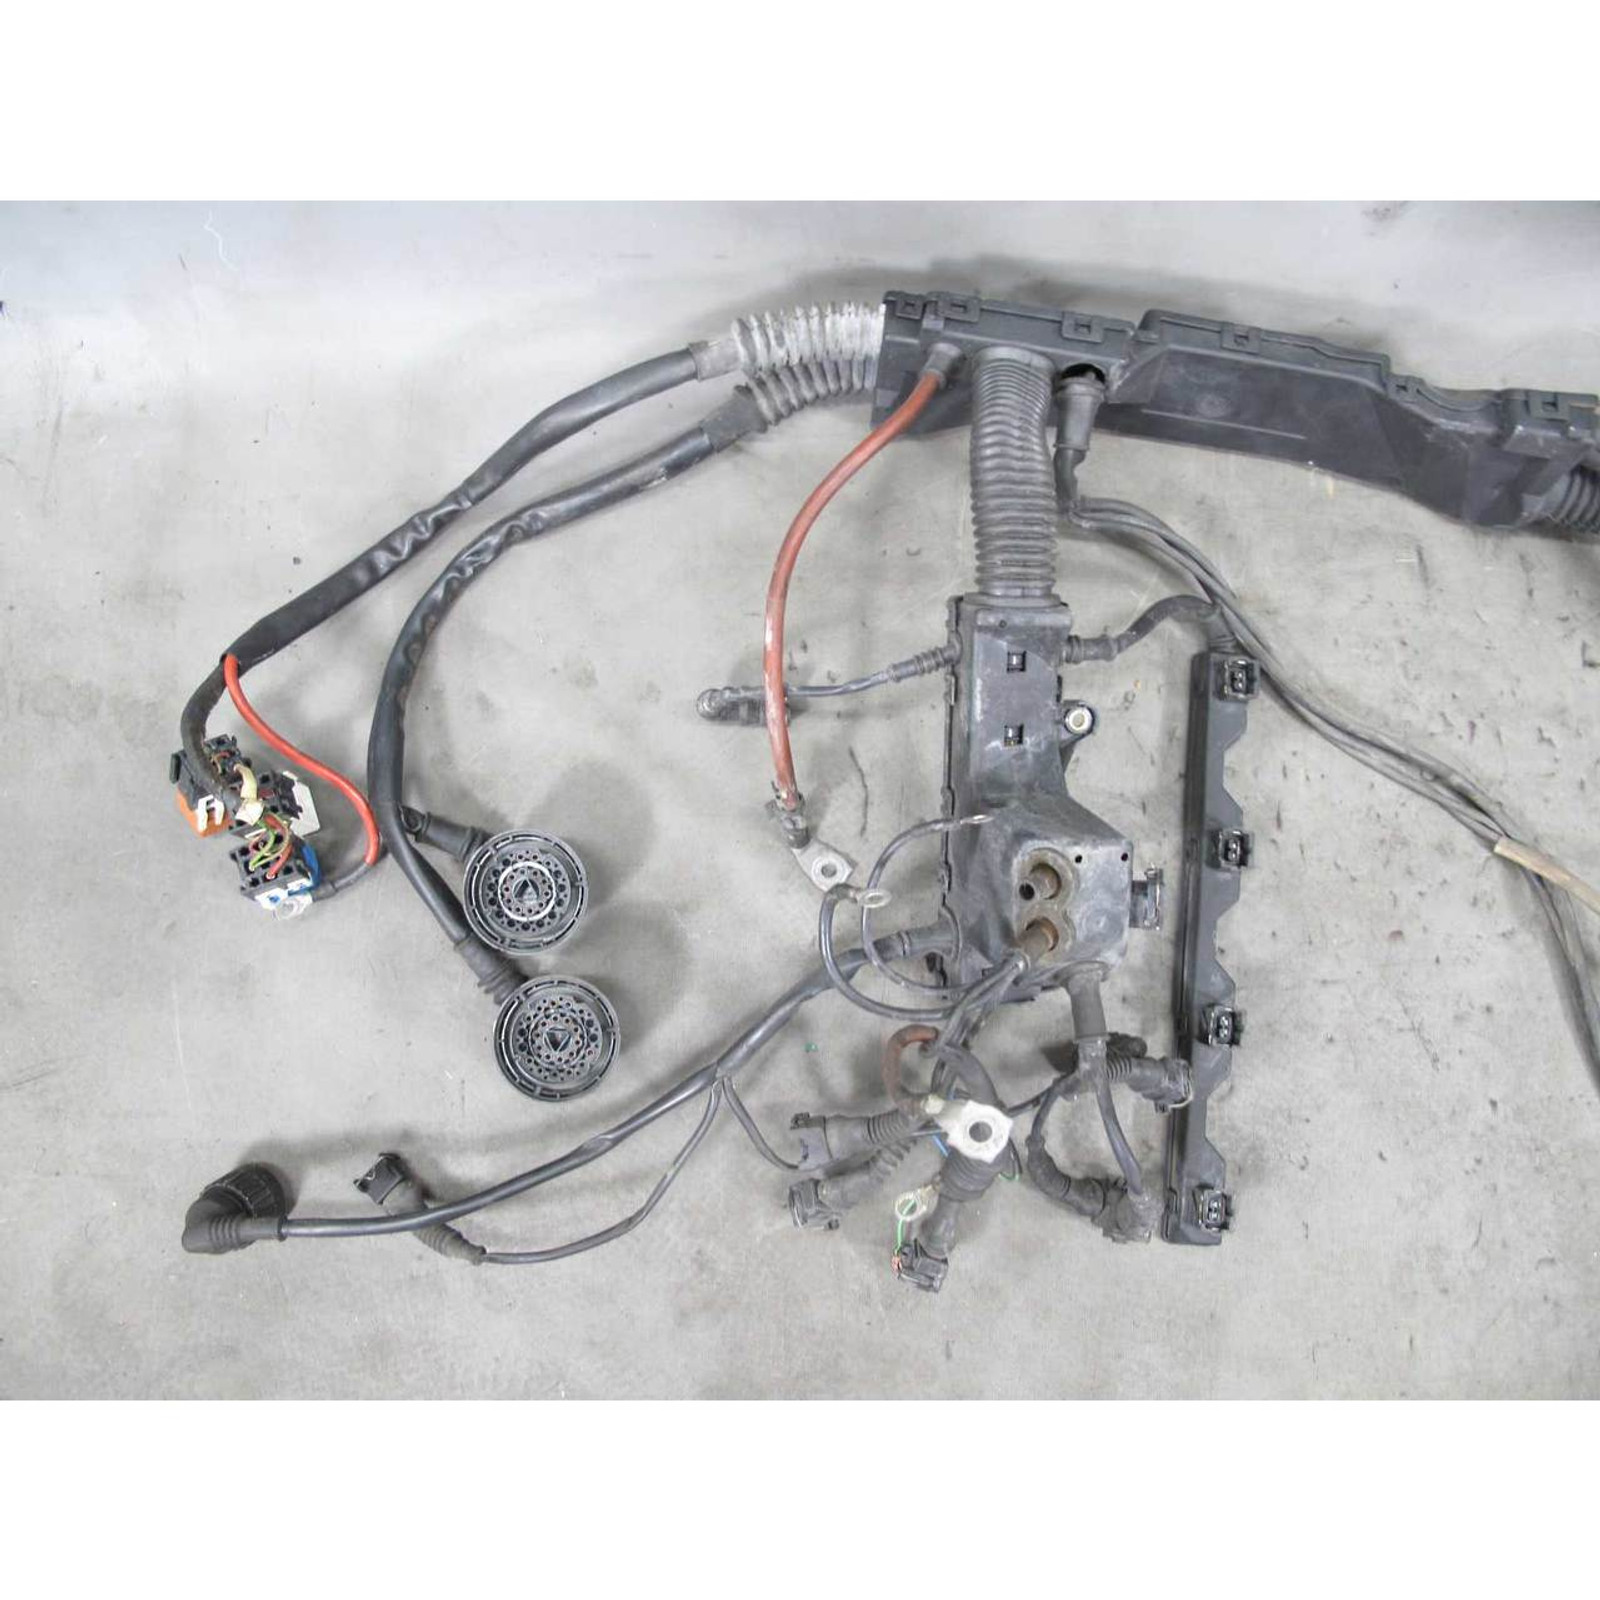 M Bmw Wiring Harness on bmw blower motor, bmw radio, ford 7 3 injector harness, bmw k motorcycle wiring, bmw 528i wire harness replacement, bmw water pump, bmw fuses, bmw e46 stereo wiring diagram, bmw 740 transmission harness, bmw oil filter, bmw 328 front wiring, chevy 6 5 glow plug harness, bmw harness to pioneer, e30 temp sensor harness, bmw engine harness, ignition coil harness, bmw relays, bmw wiring kit, cover for wire harness, bmw heater core,